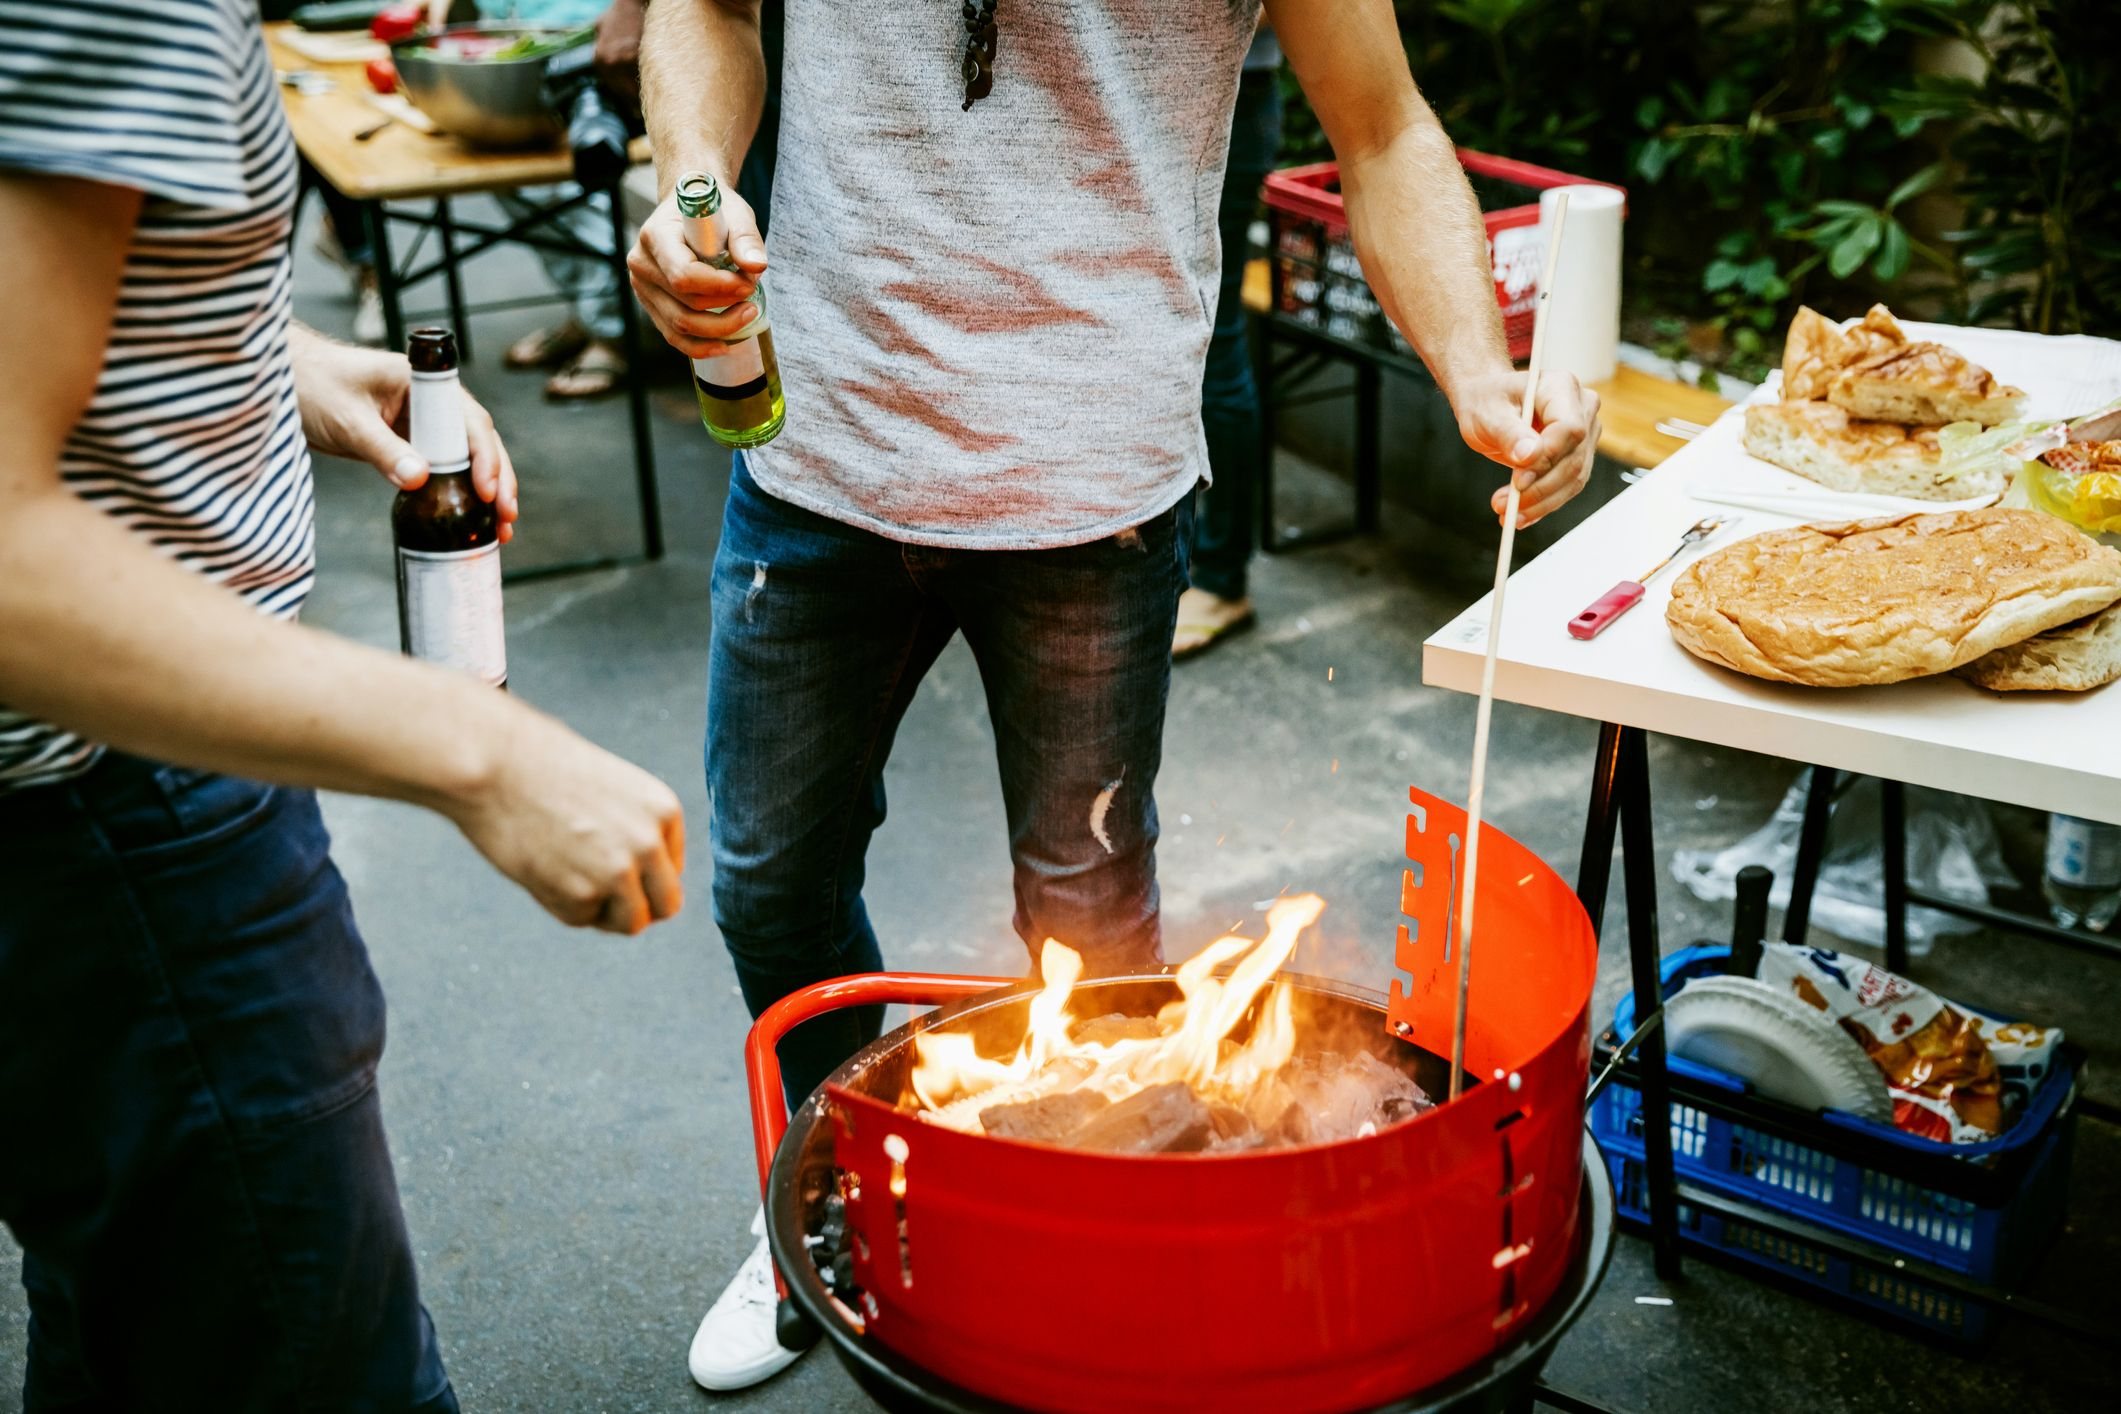 The Science Behind Why You Drink More Beer at a Cookout